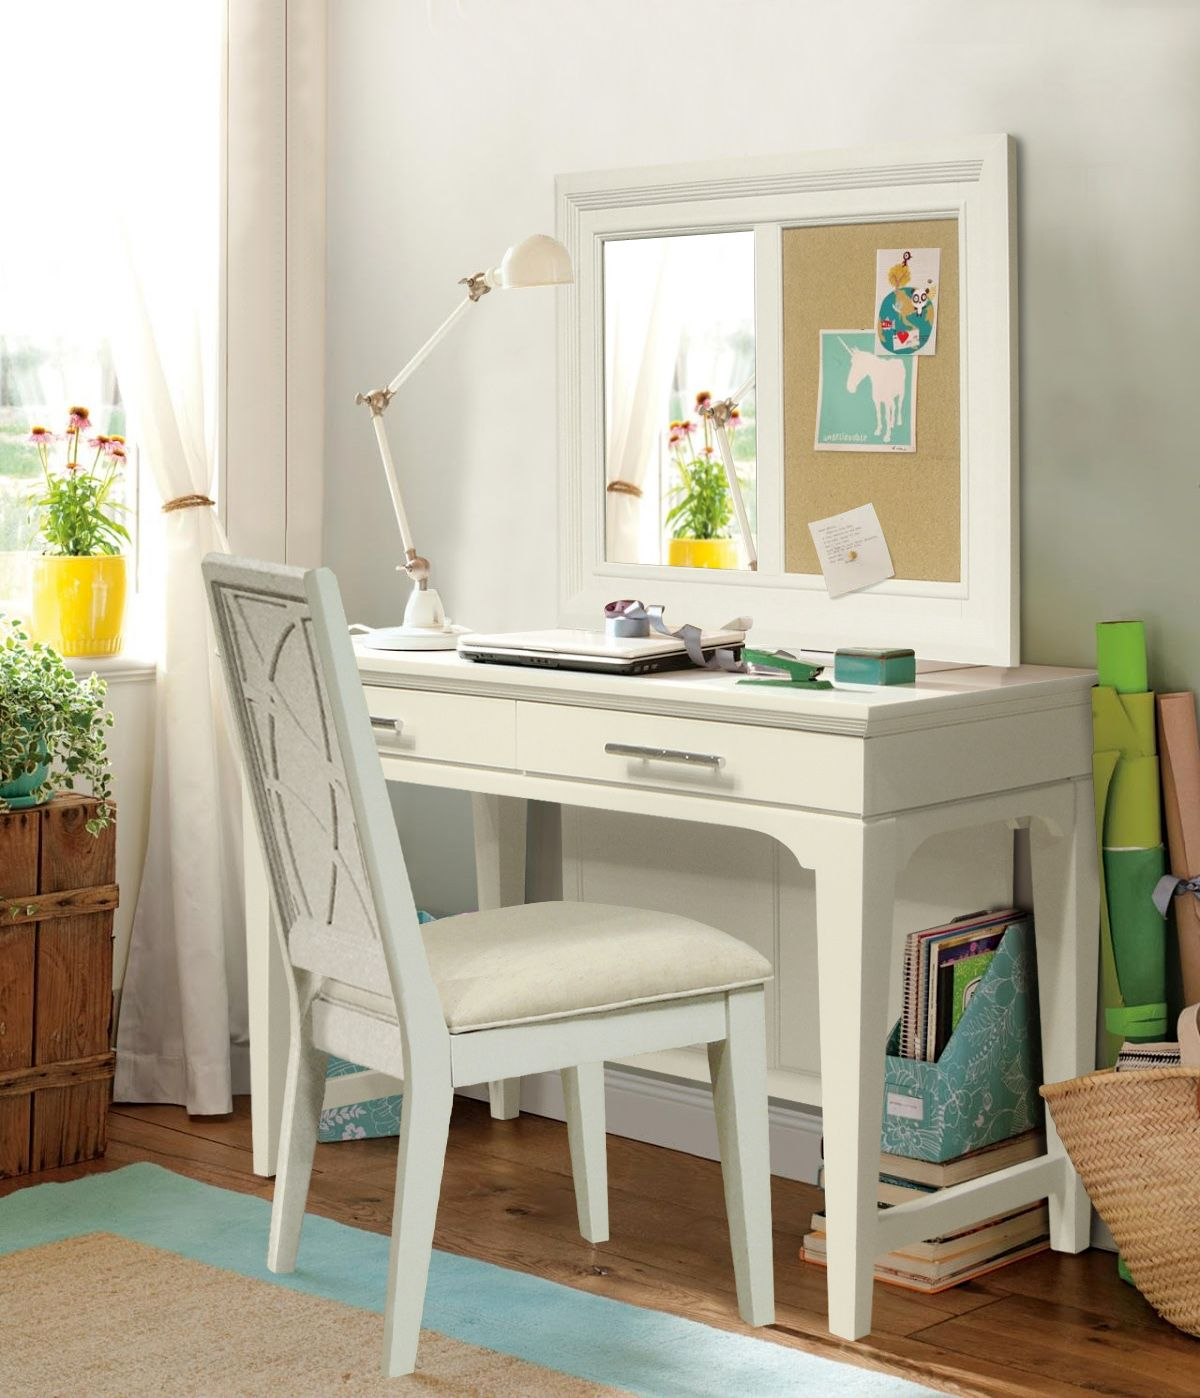 Transitional Youth Bedroom Desk, Mirror and Chair